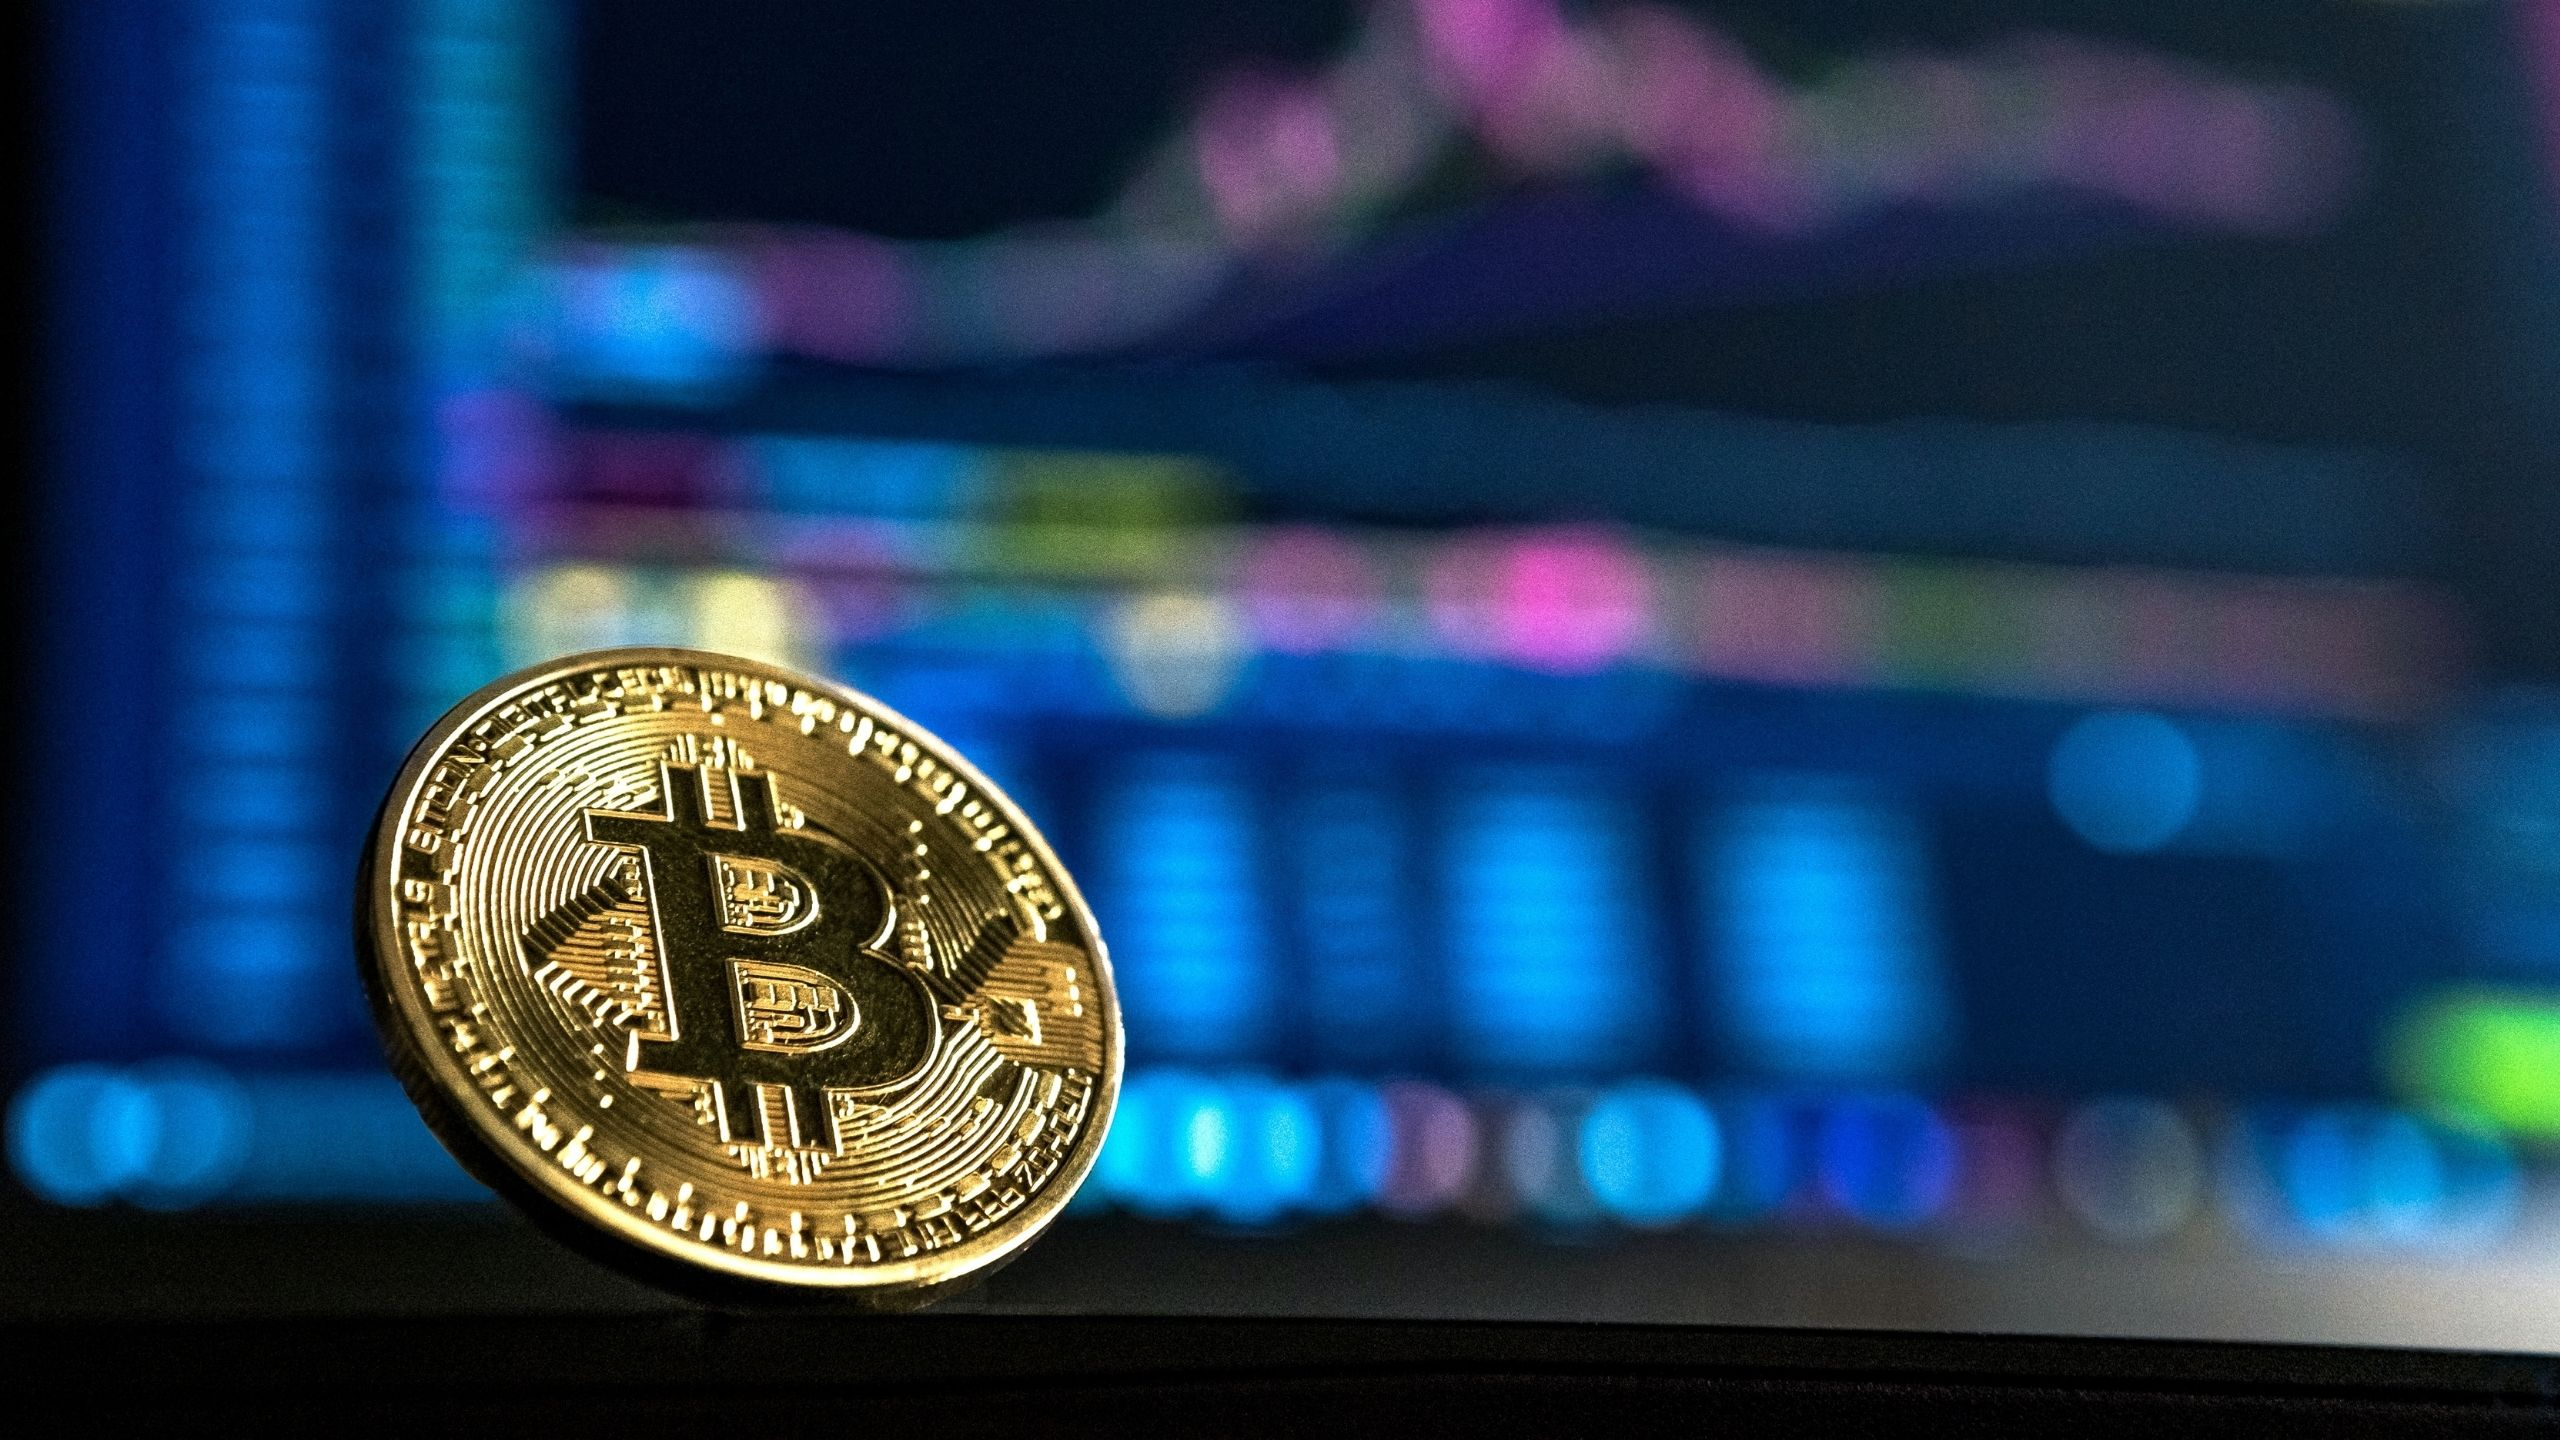 Will Amazon Ever Accept Bitcoin as Payment?